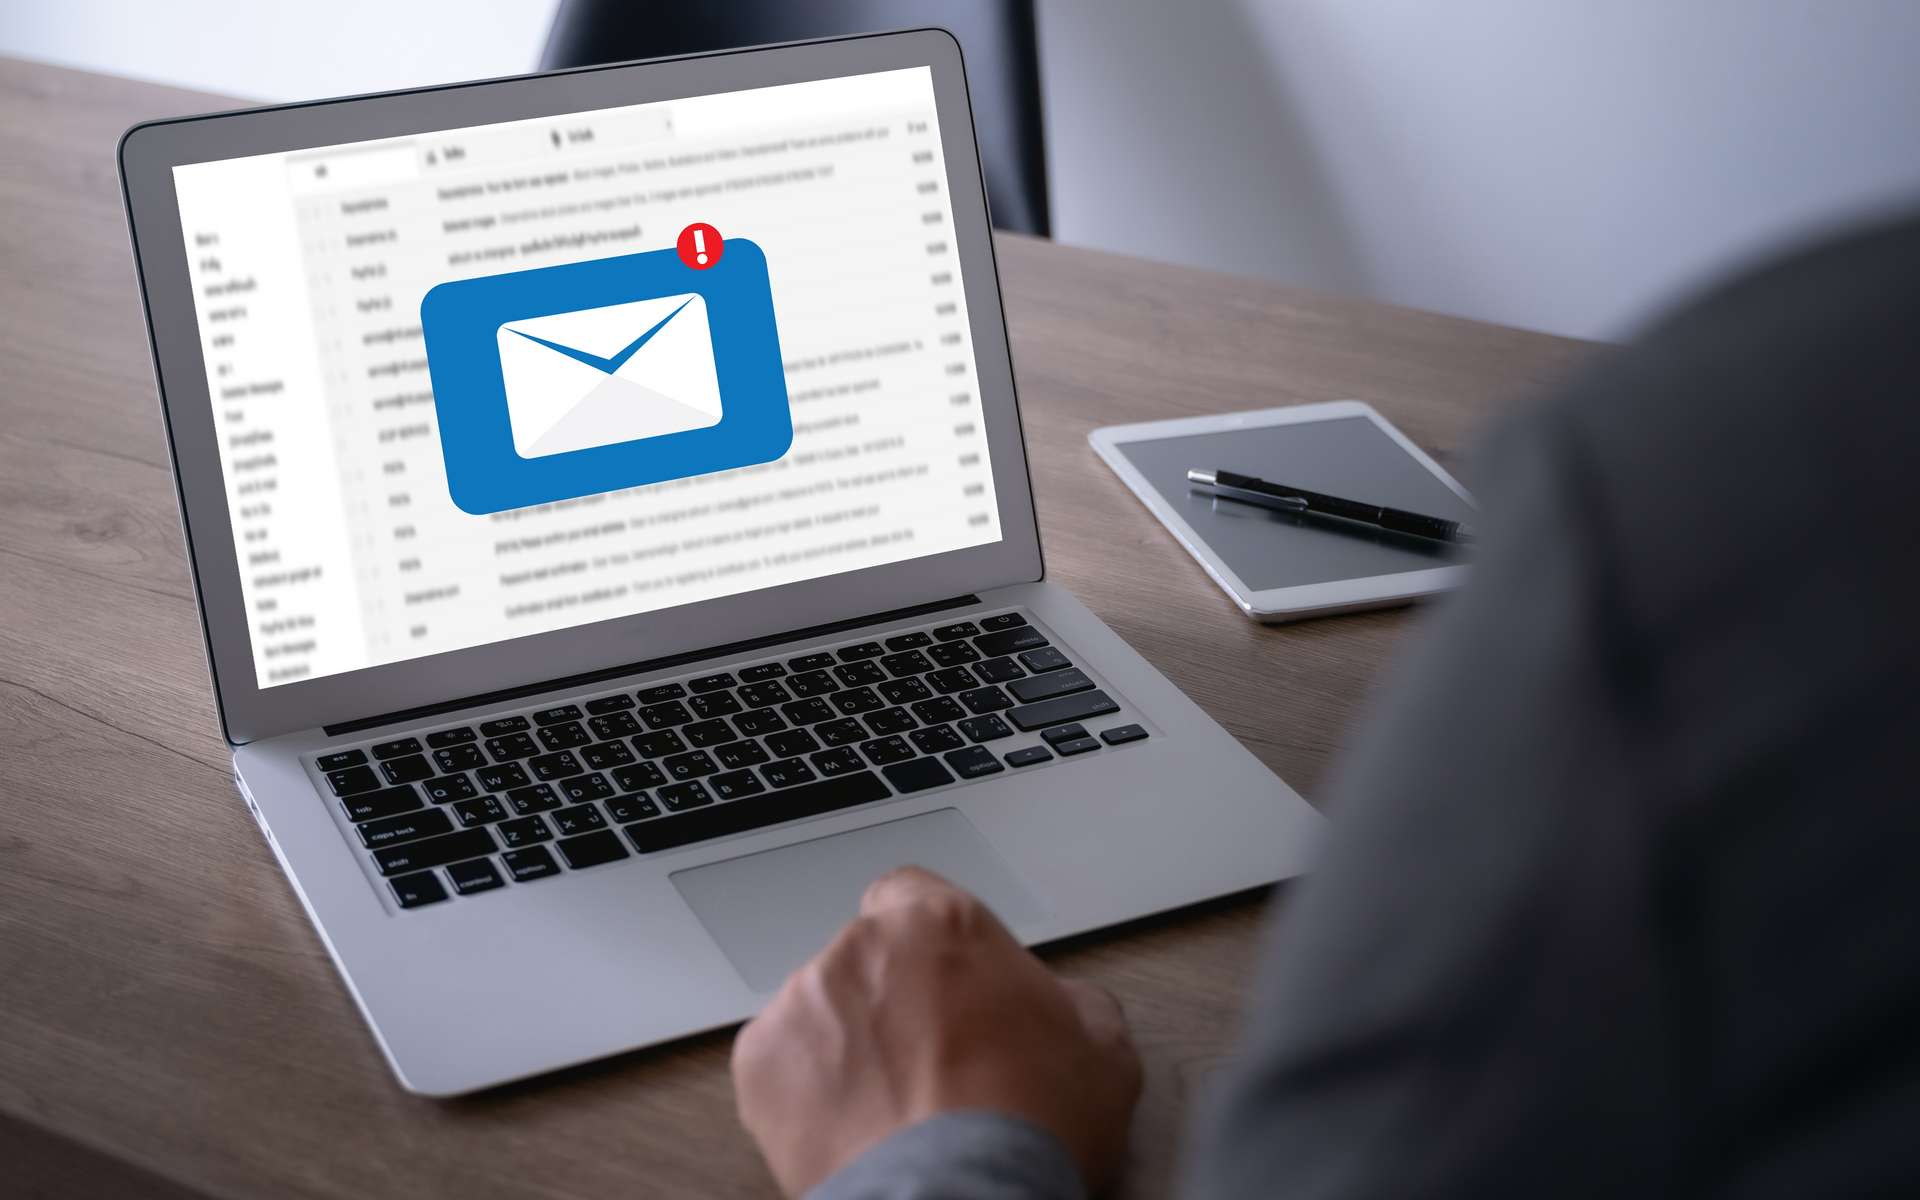 Il est possible d'empêcher le pistage de nos e-mails © onephoto, Adobe Stock